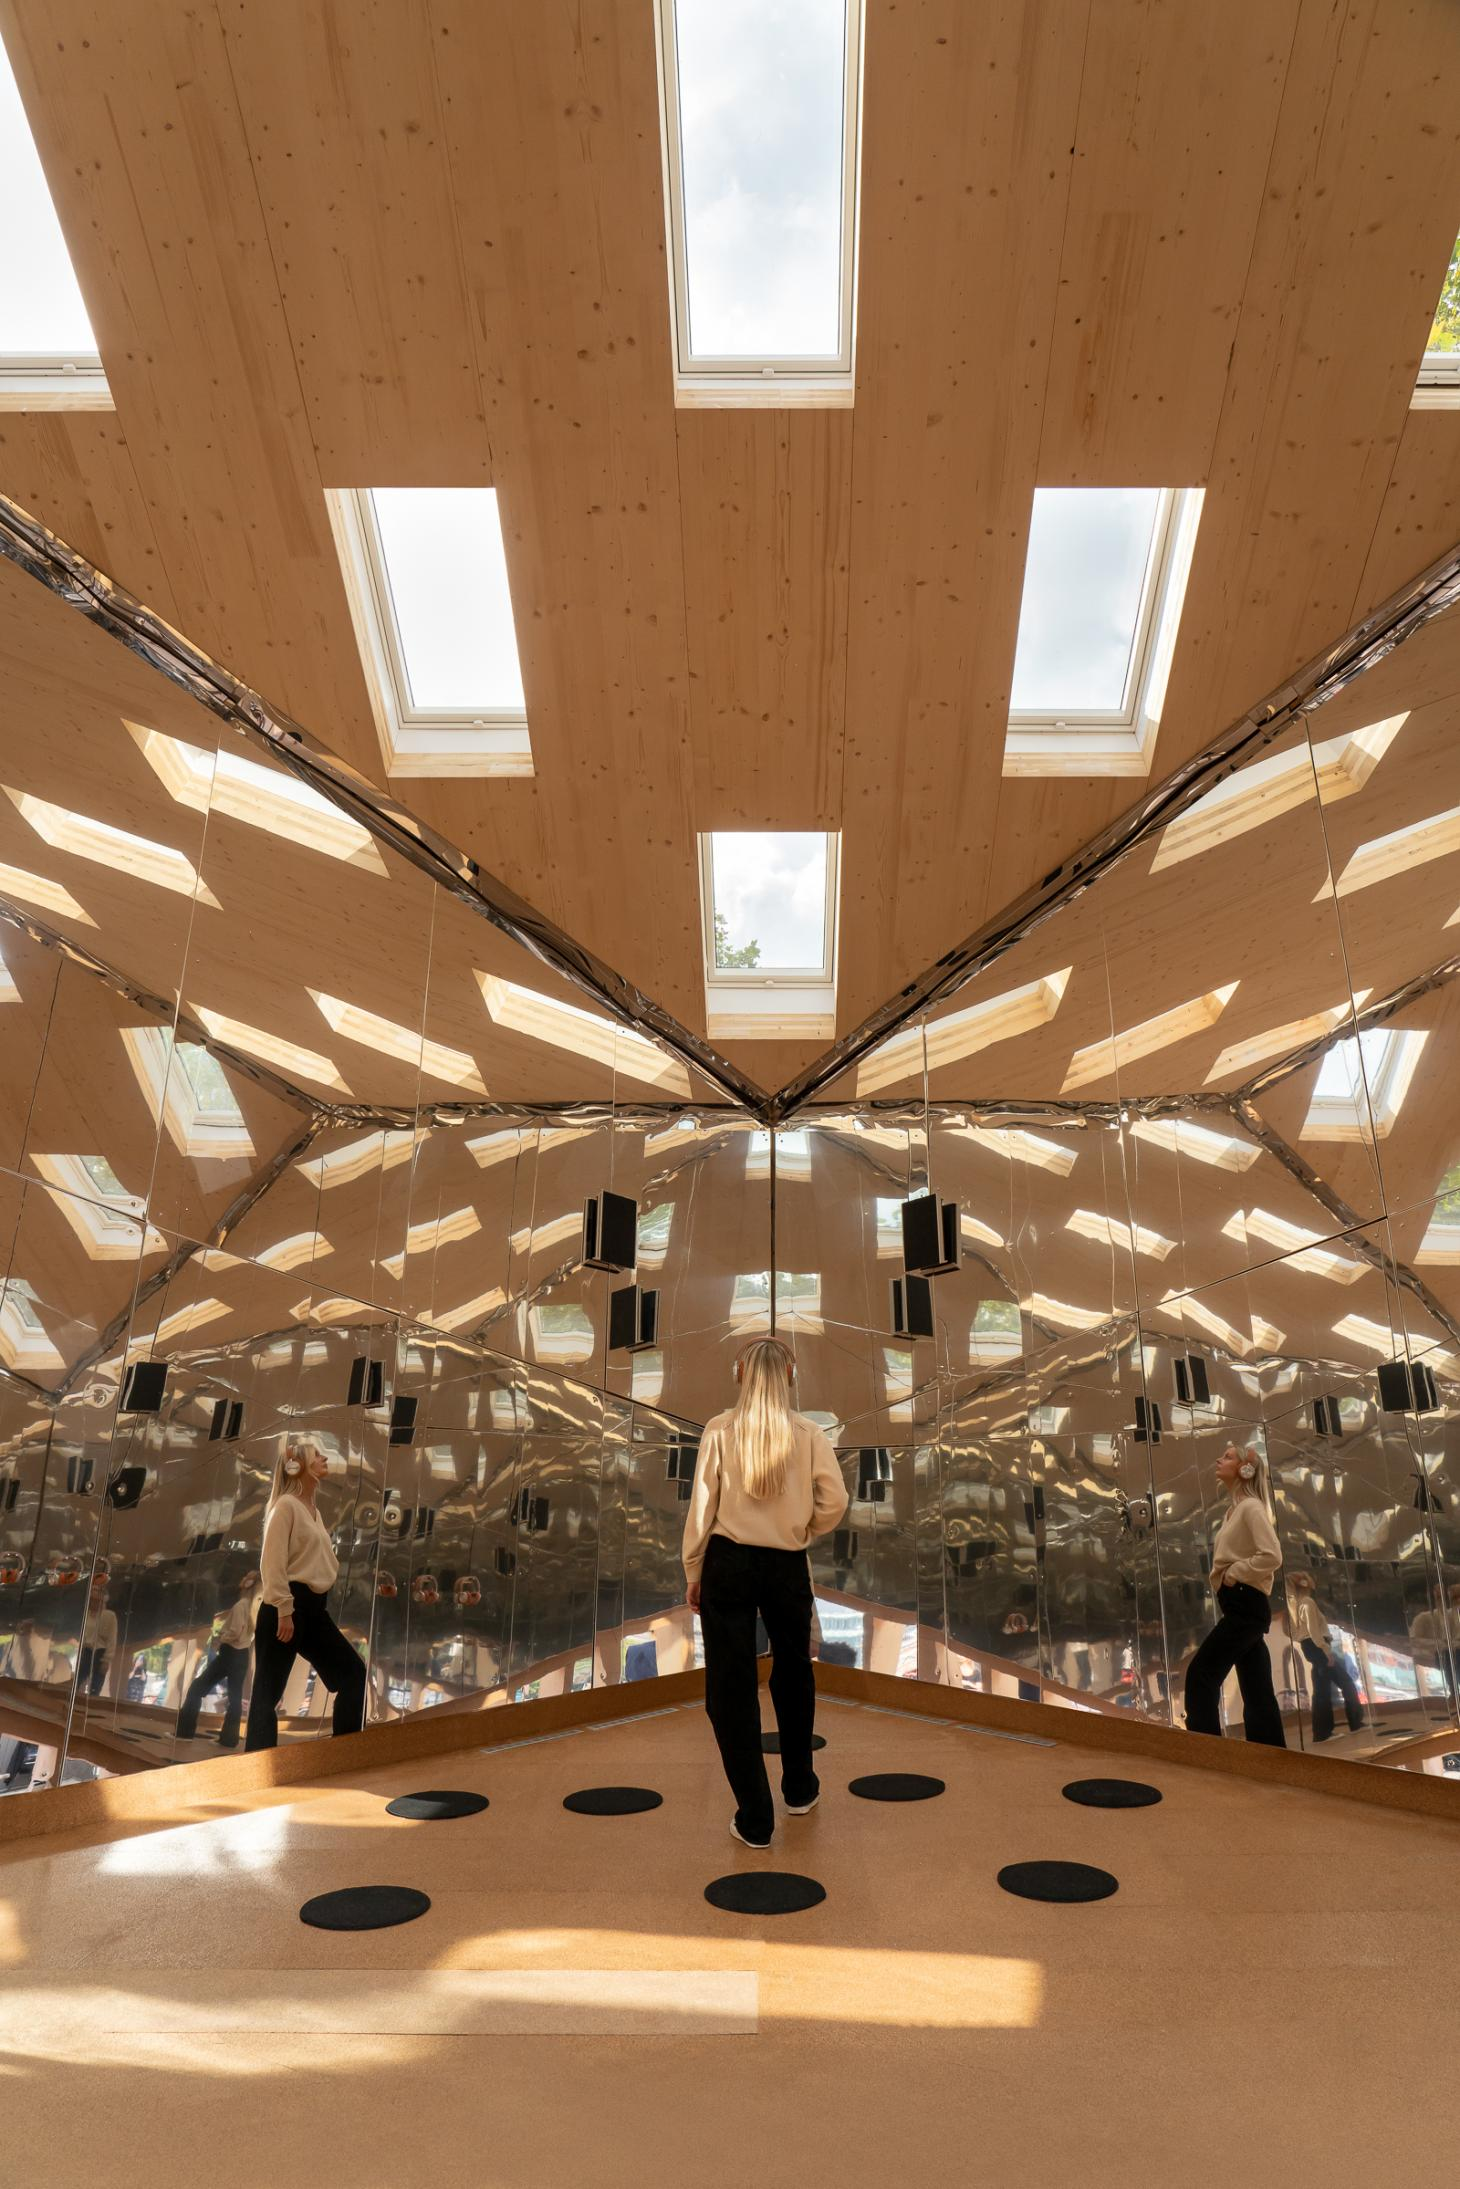 The interior of The Cube by VELUX